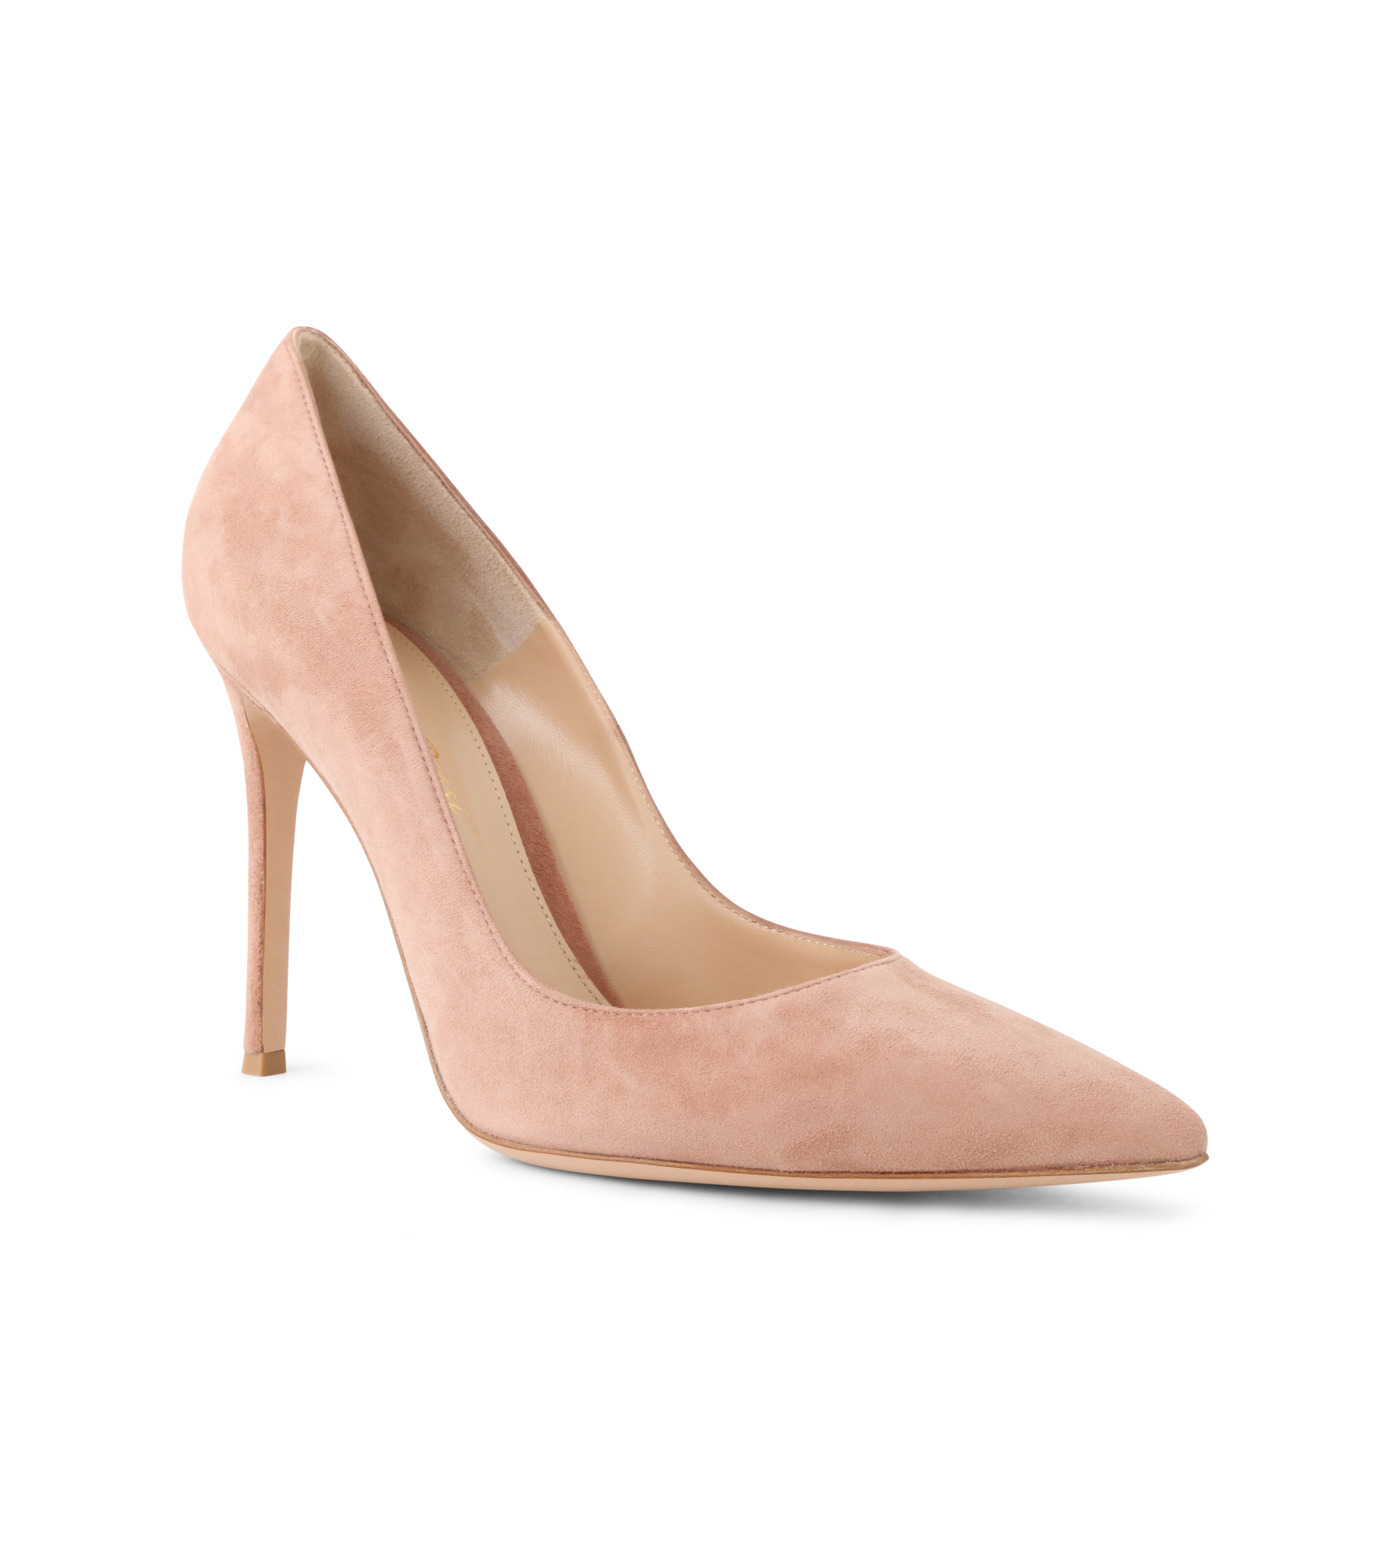 Gianvito Rossi(ジャンヴィト ロッシ)のSuede Pump-LIGHT BEIGE(パンプス/pumps)-G28470-51 拡大詳細画像1